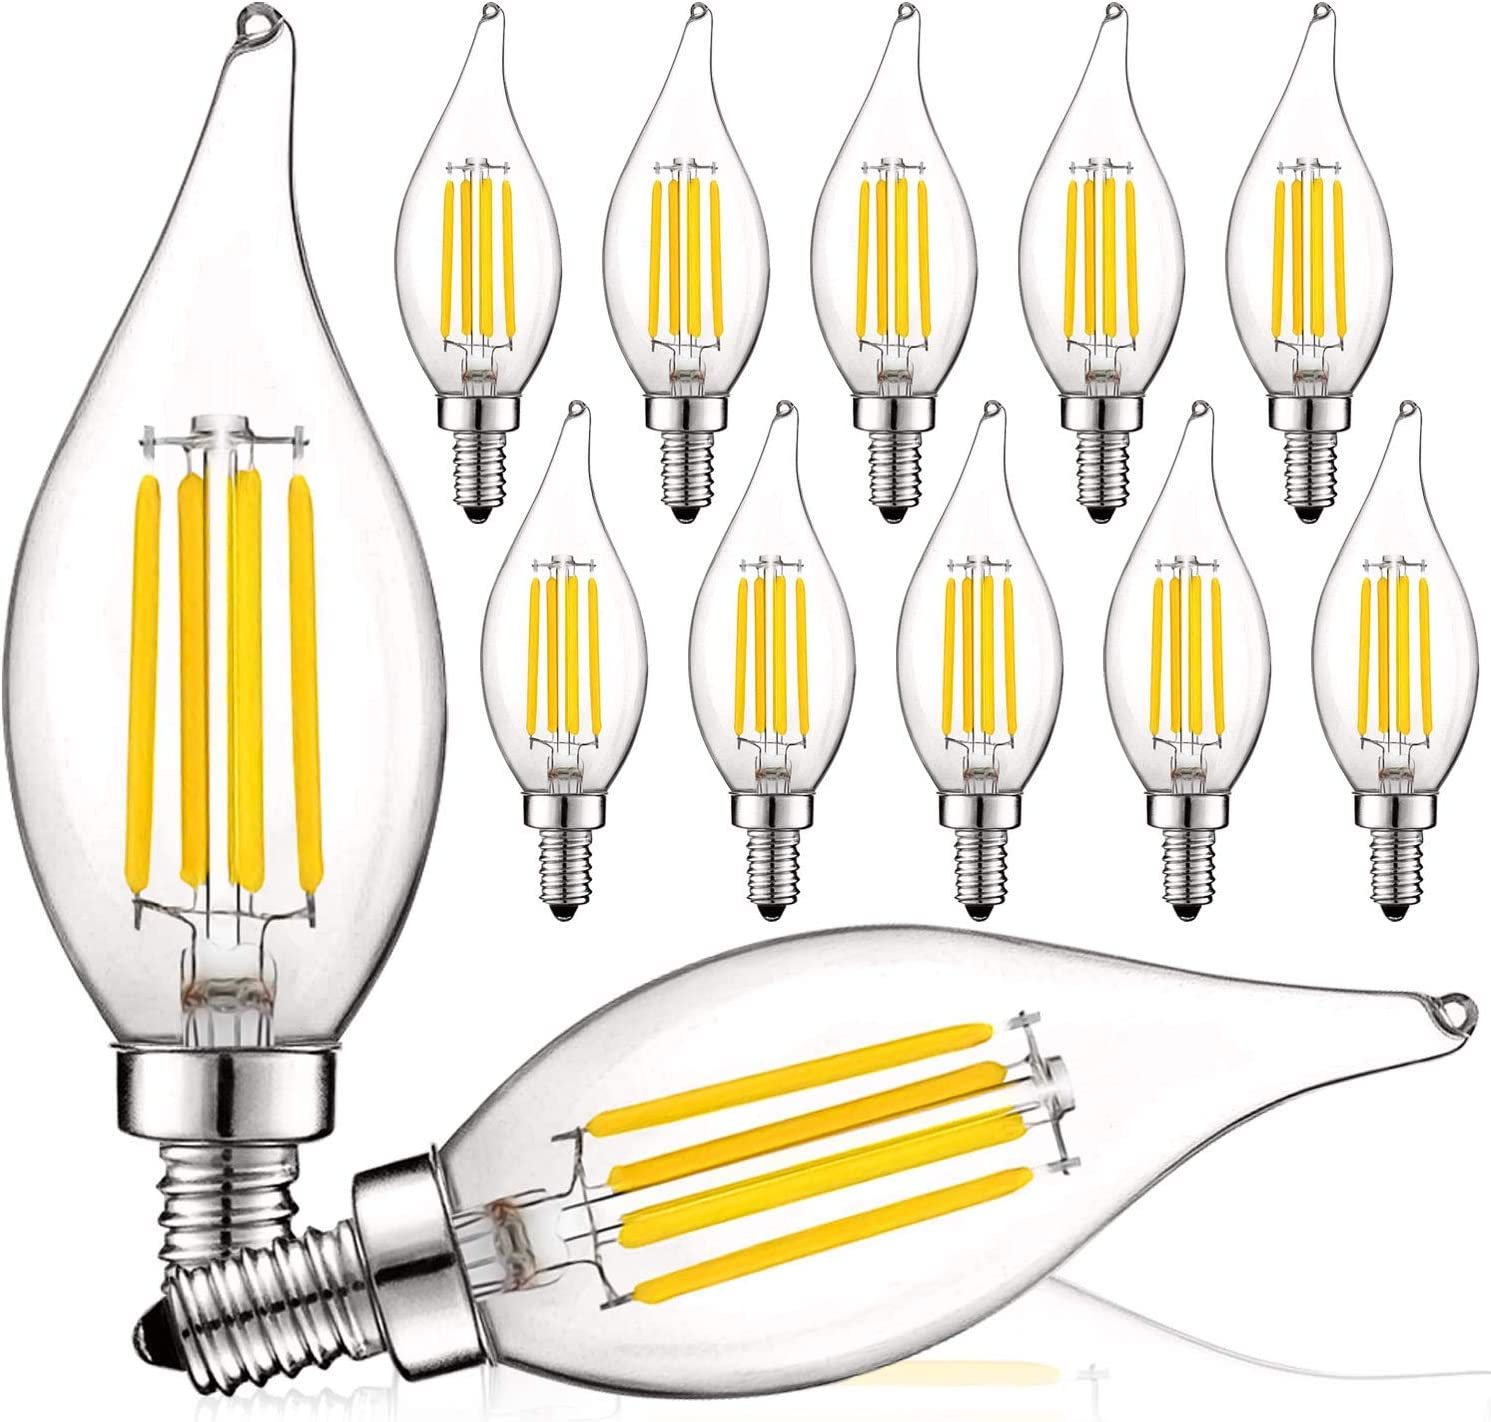 Luxrite Vintage Candelabra LED Bulb 60W Equivalent, 550 Lumens, 3000K Soft White, LED Chandelier Light Bulbs 5W, Dimmable, Flame Tip Clear Glass, Filament LED Candle Bulbs, E12 Base (12 Pack) - -